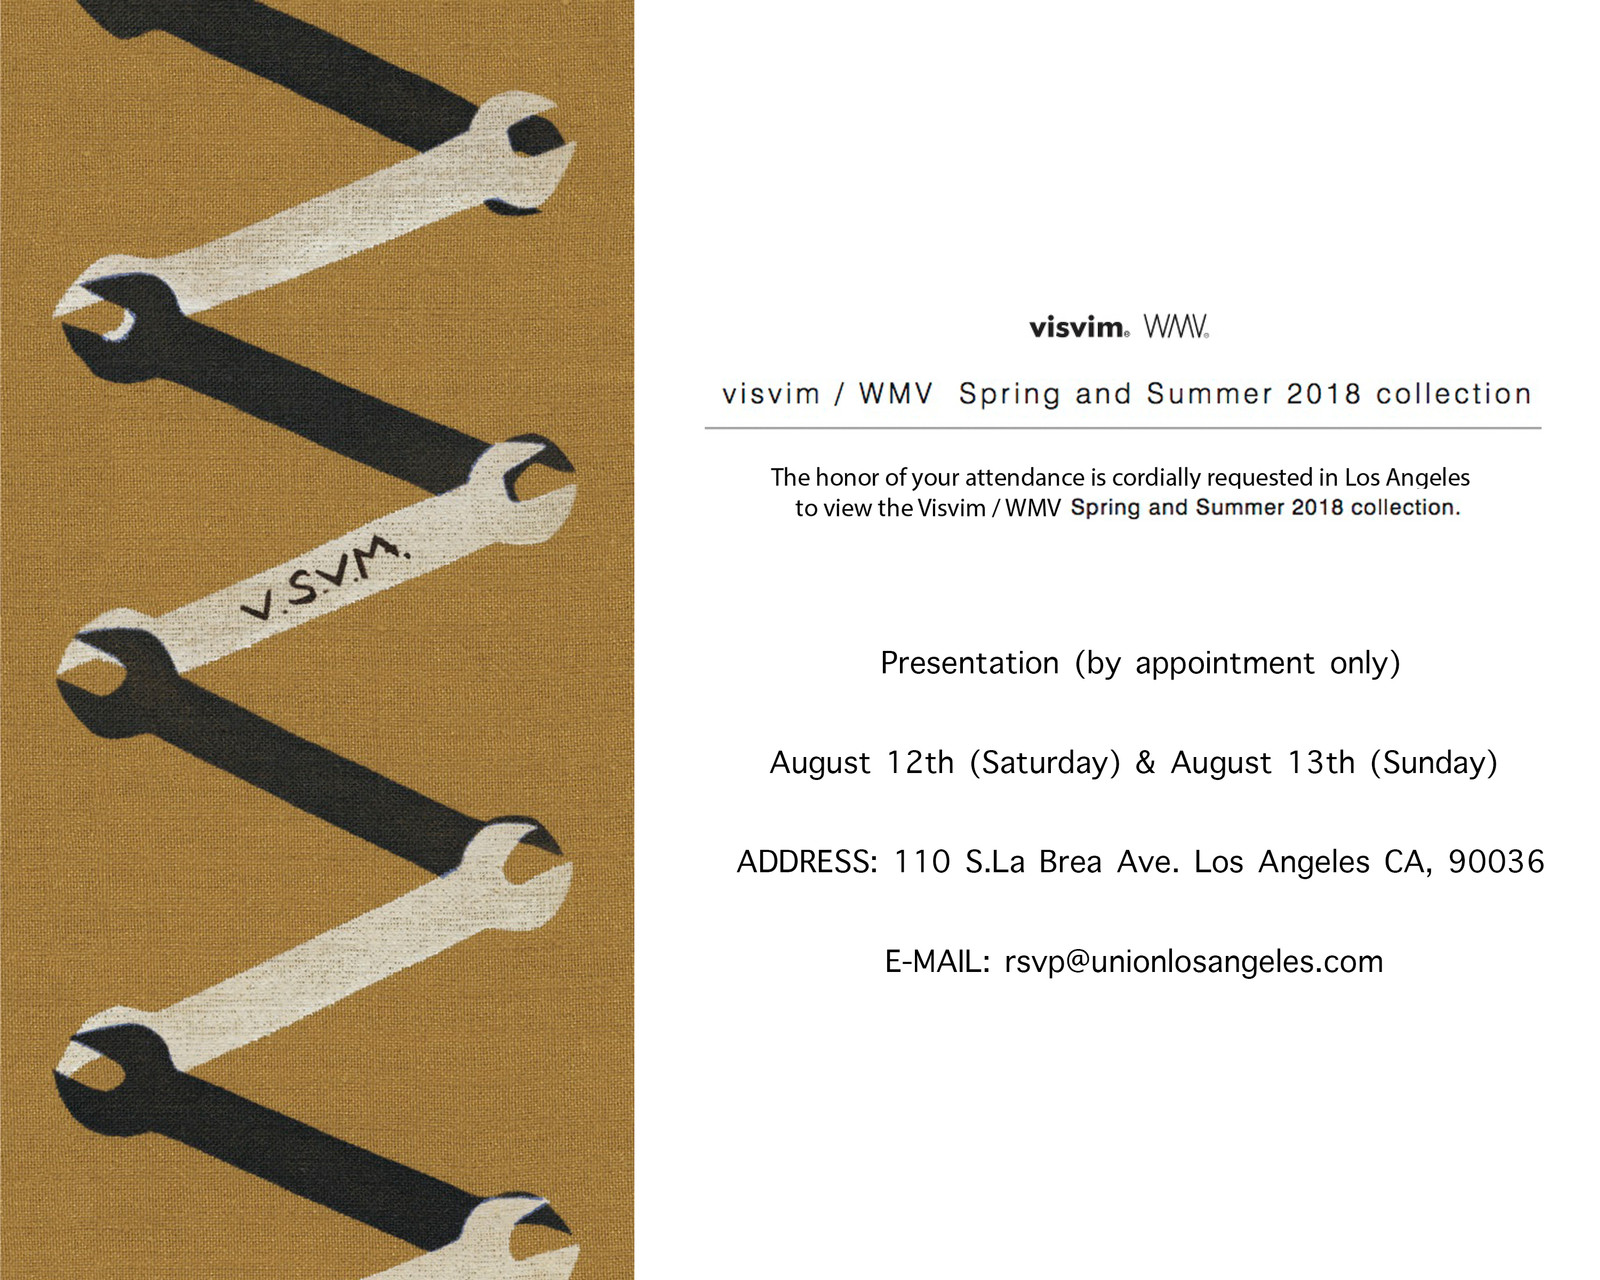 visvim 2018 Spring Summer Trunk Show Union Los Angeles 2017 August 12 13 Announcement